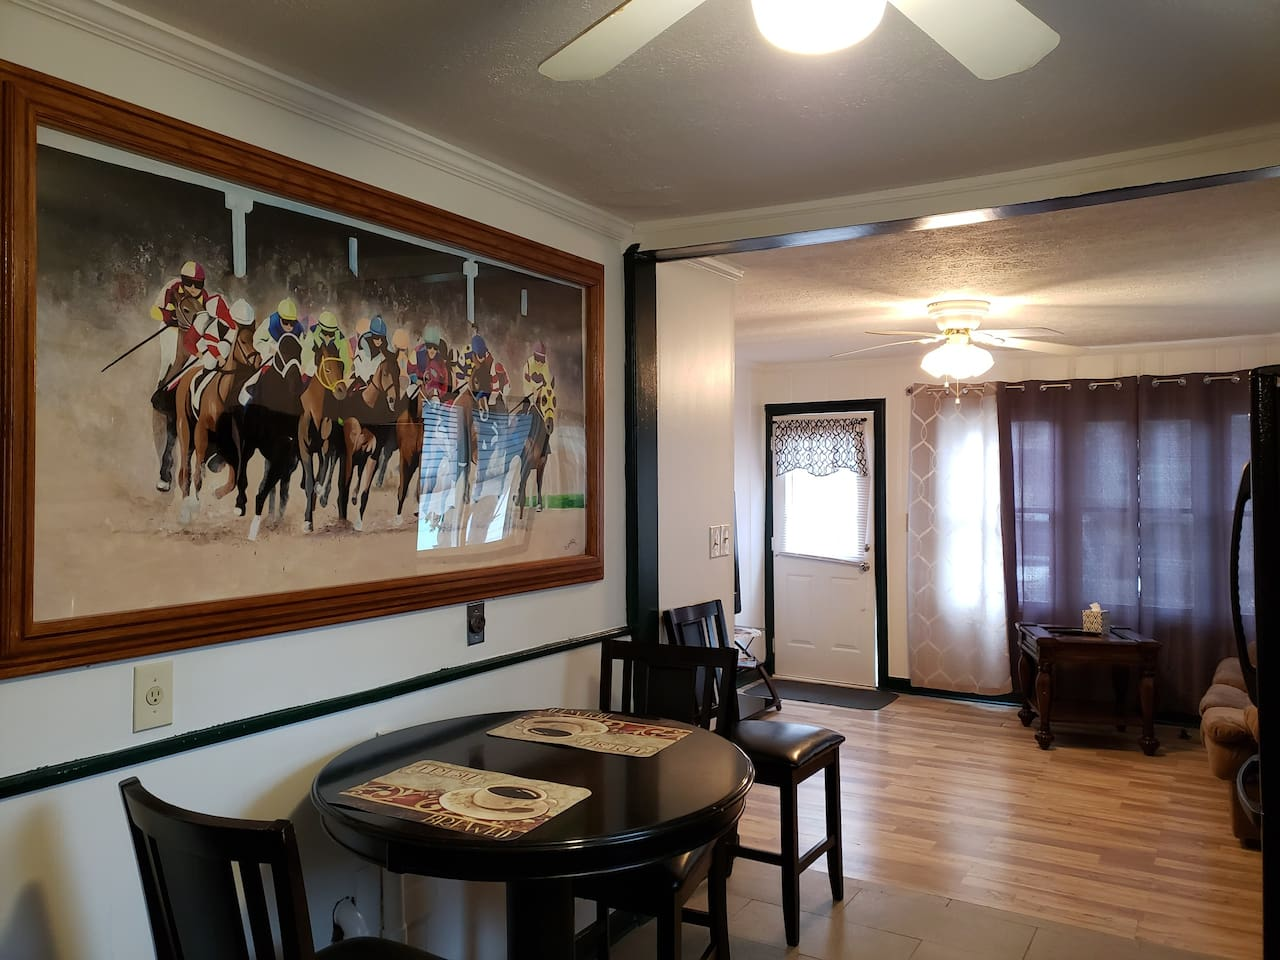 Mural by local Artist Jamie Hatfield with inspiration from a photo taken by a personal friend of the 2014 Kentucky Derby.